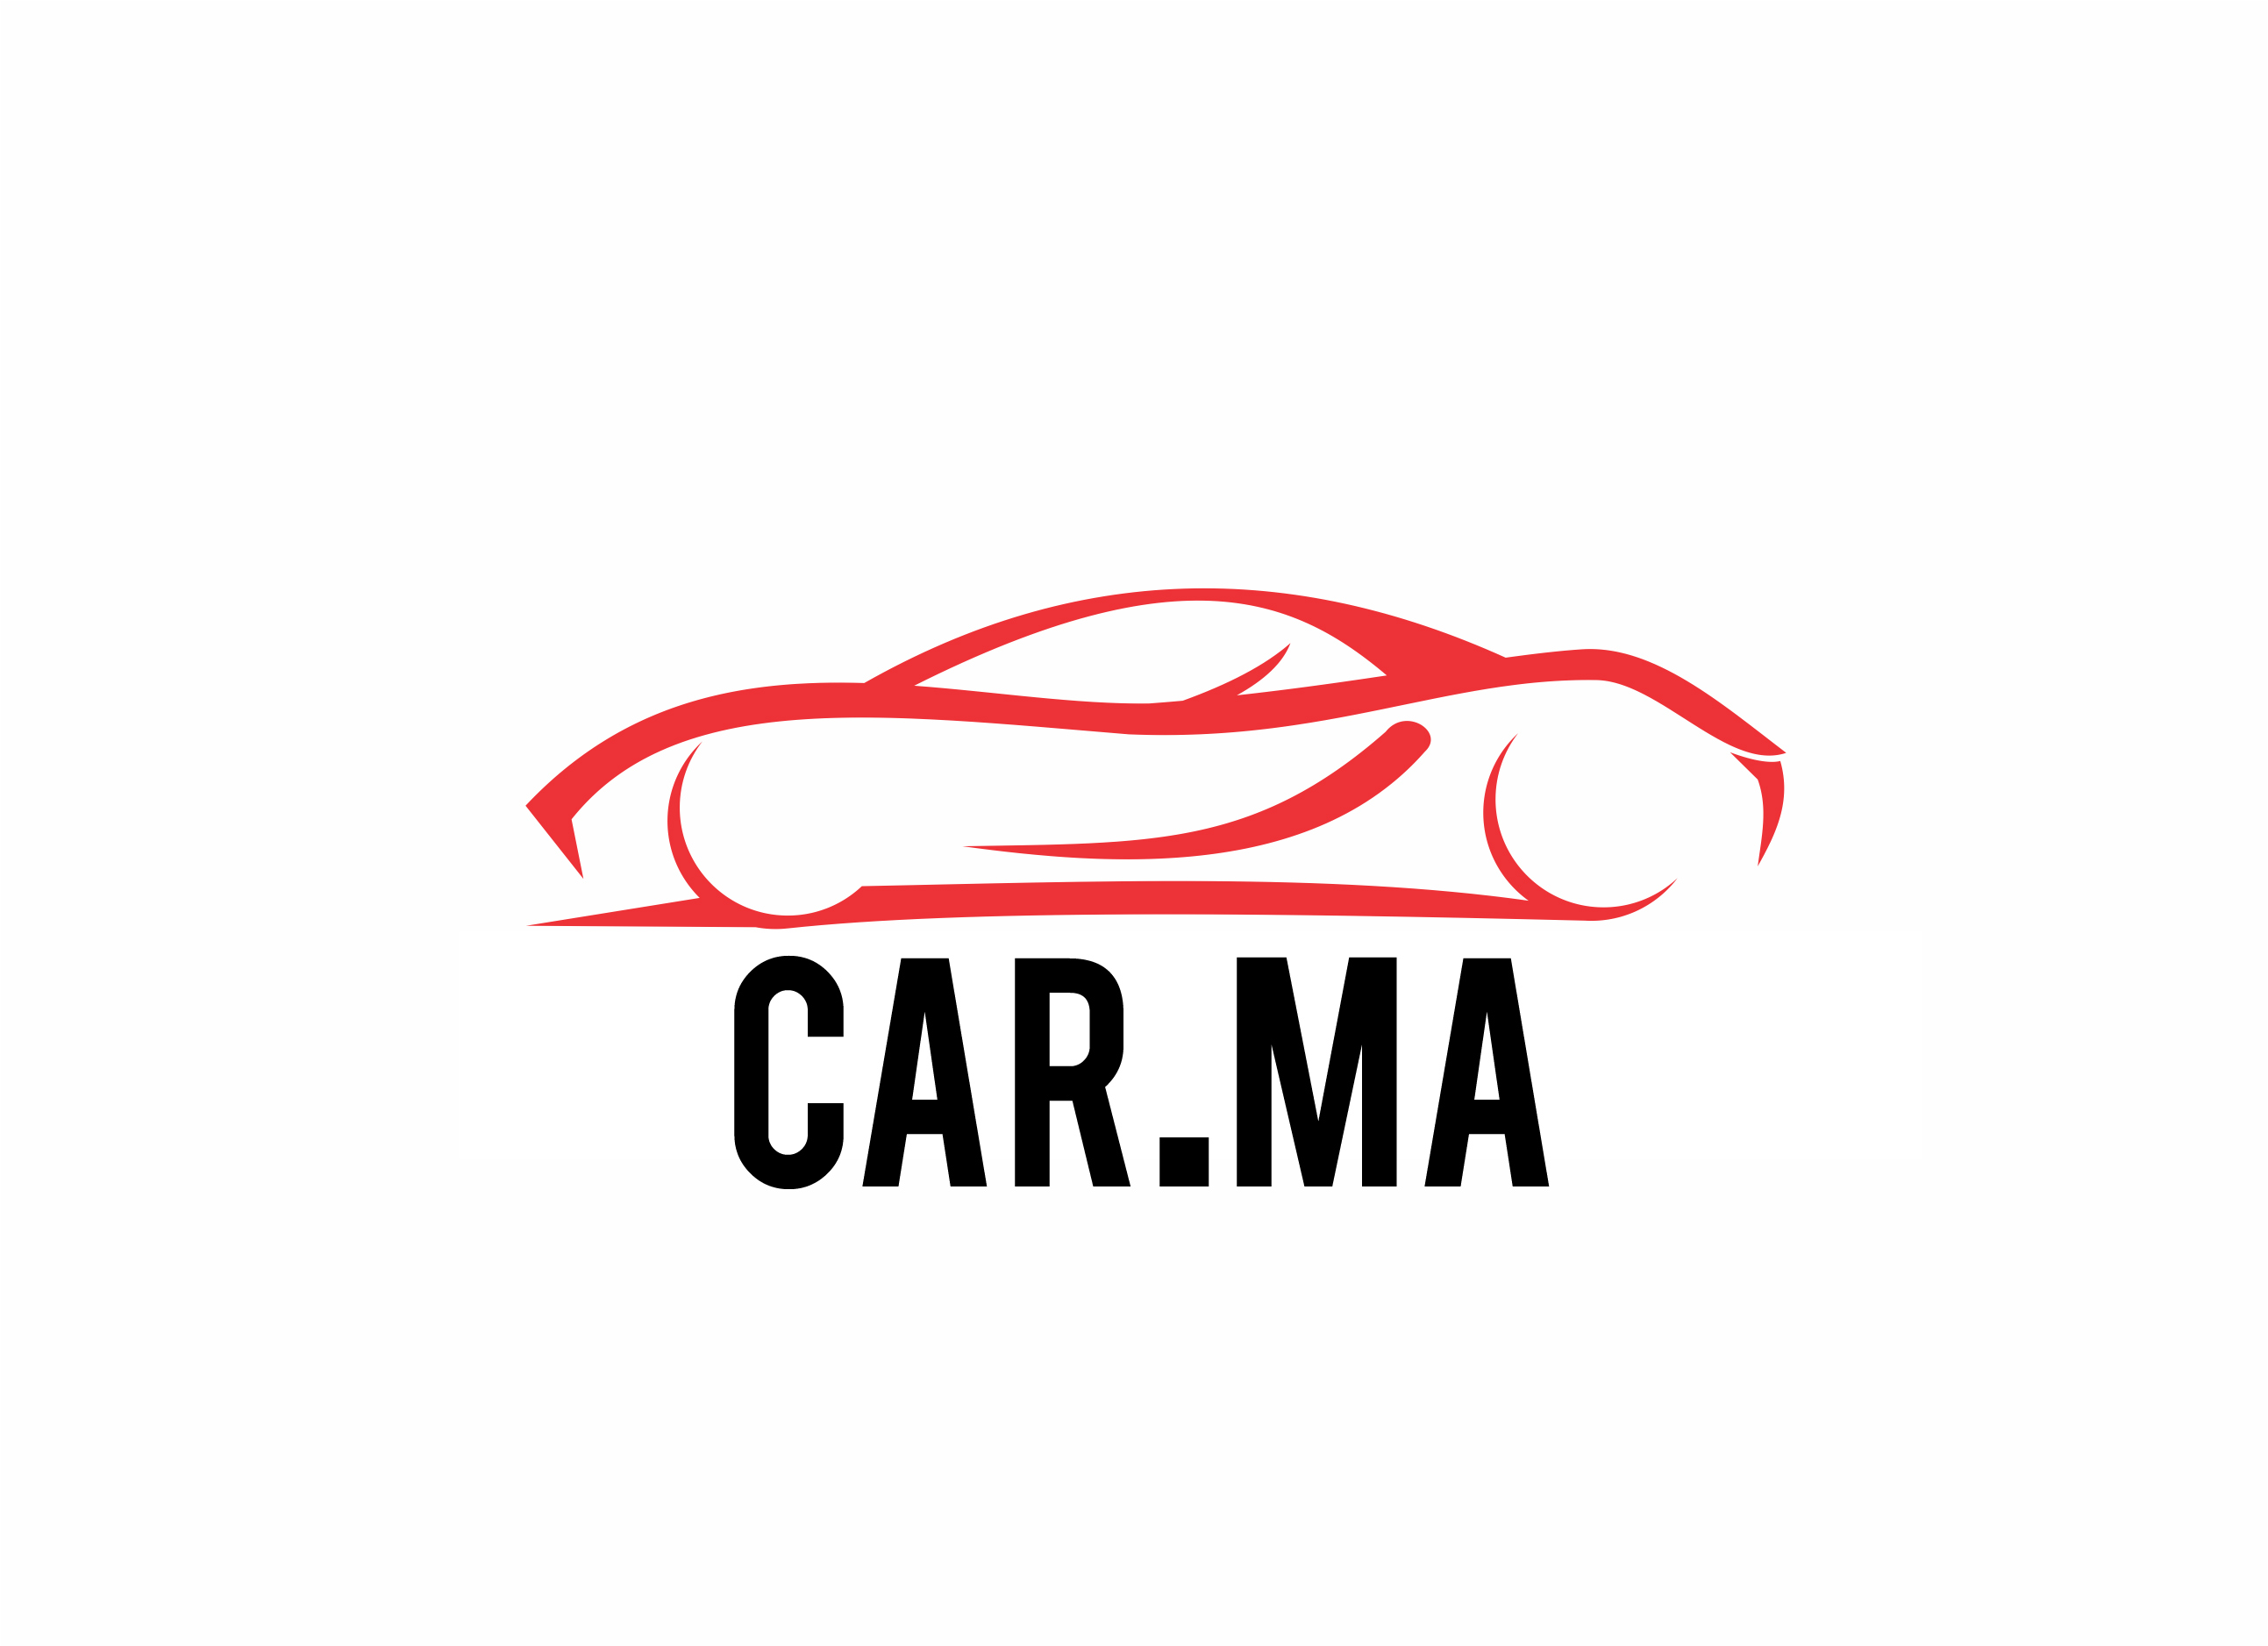 Logo Design by Shailesh Sharma - Entry No. 73 in the Logo Design Contest New Logo Design for car.ma.